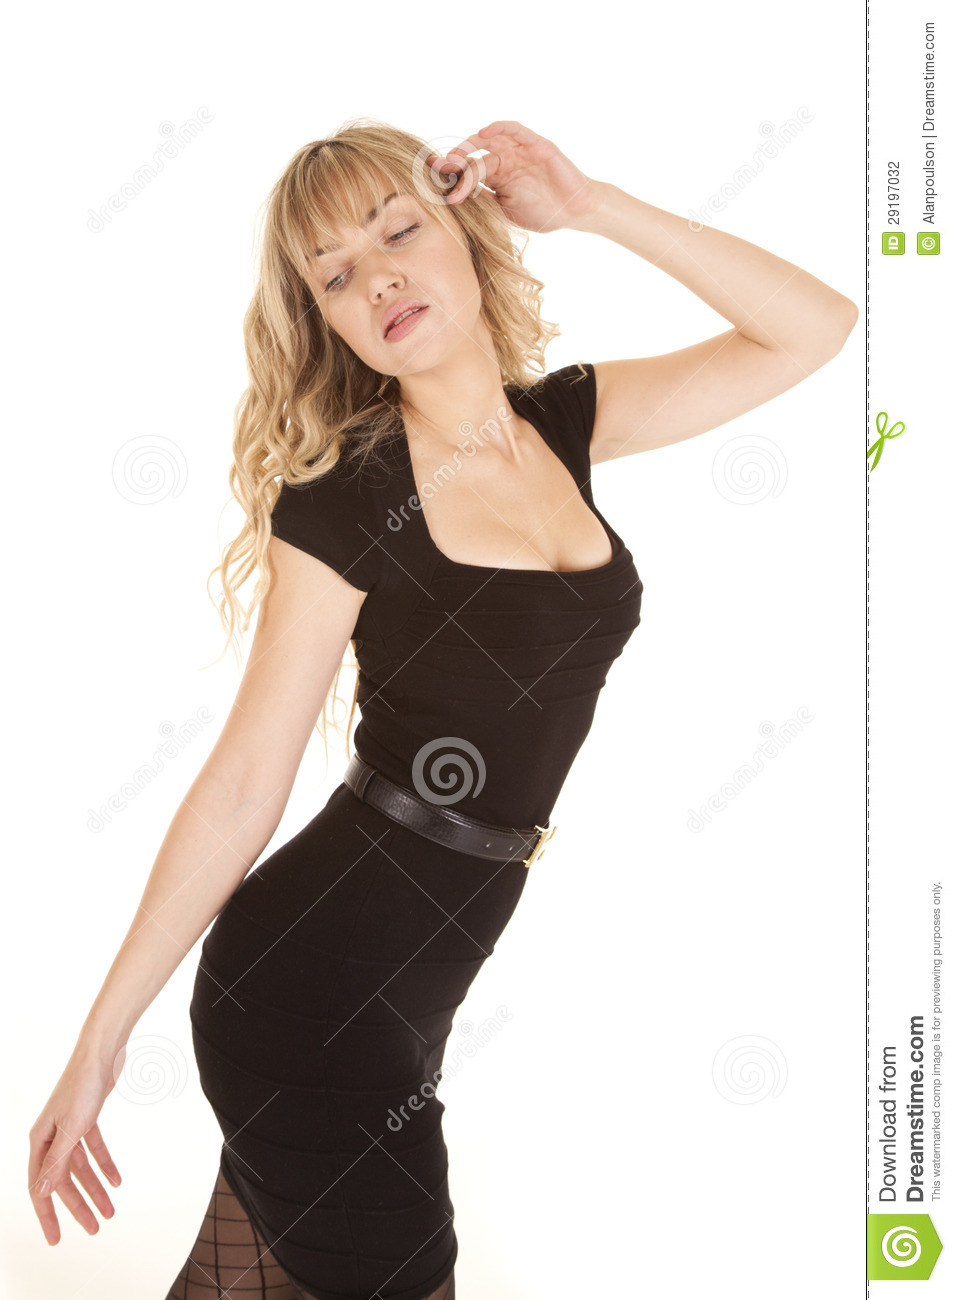 woman black dress walk look down stock photography image 29197032. Black Bedroom Furniture Sets. Home Design Ideas